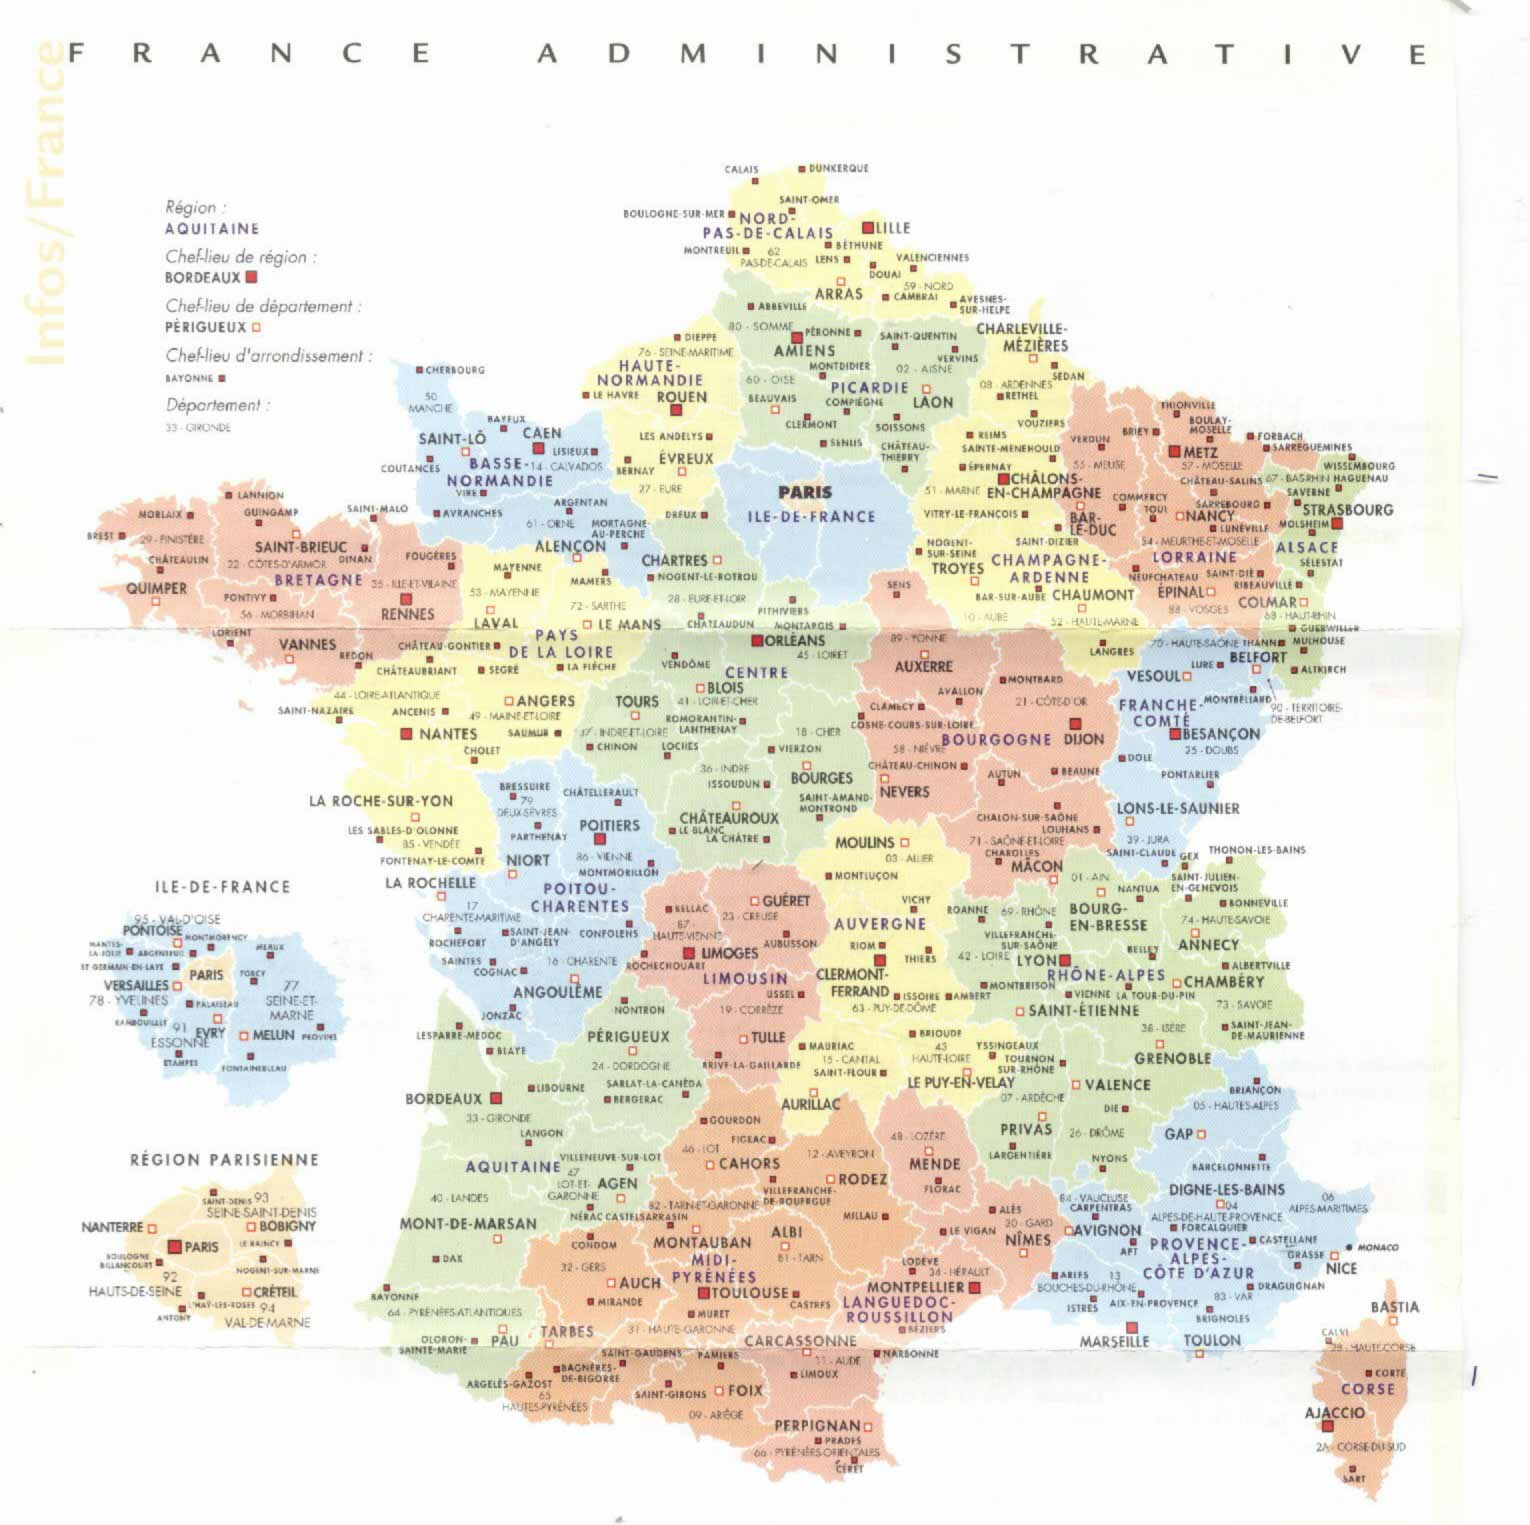 France Administrative Divisions • Mapsof.net